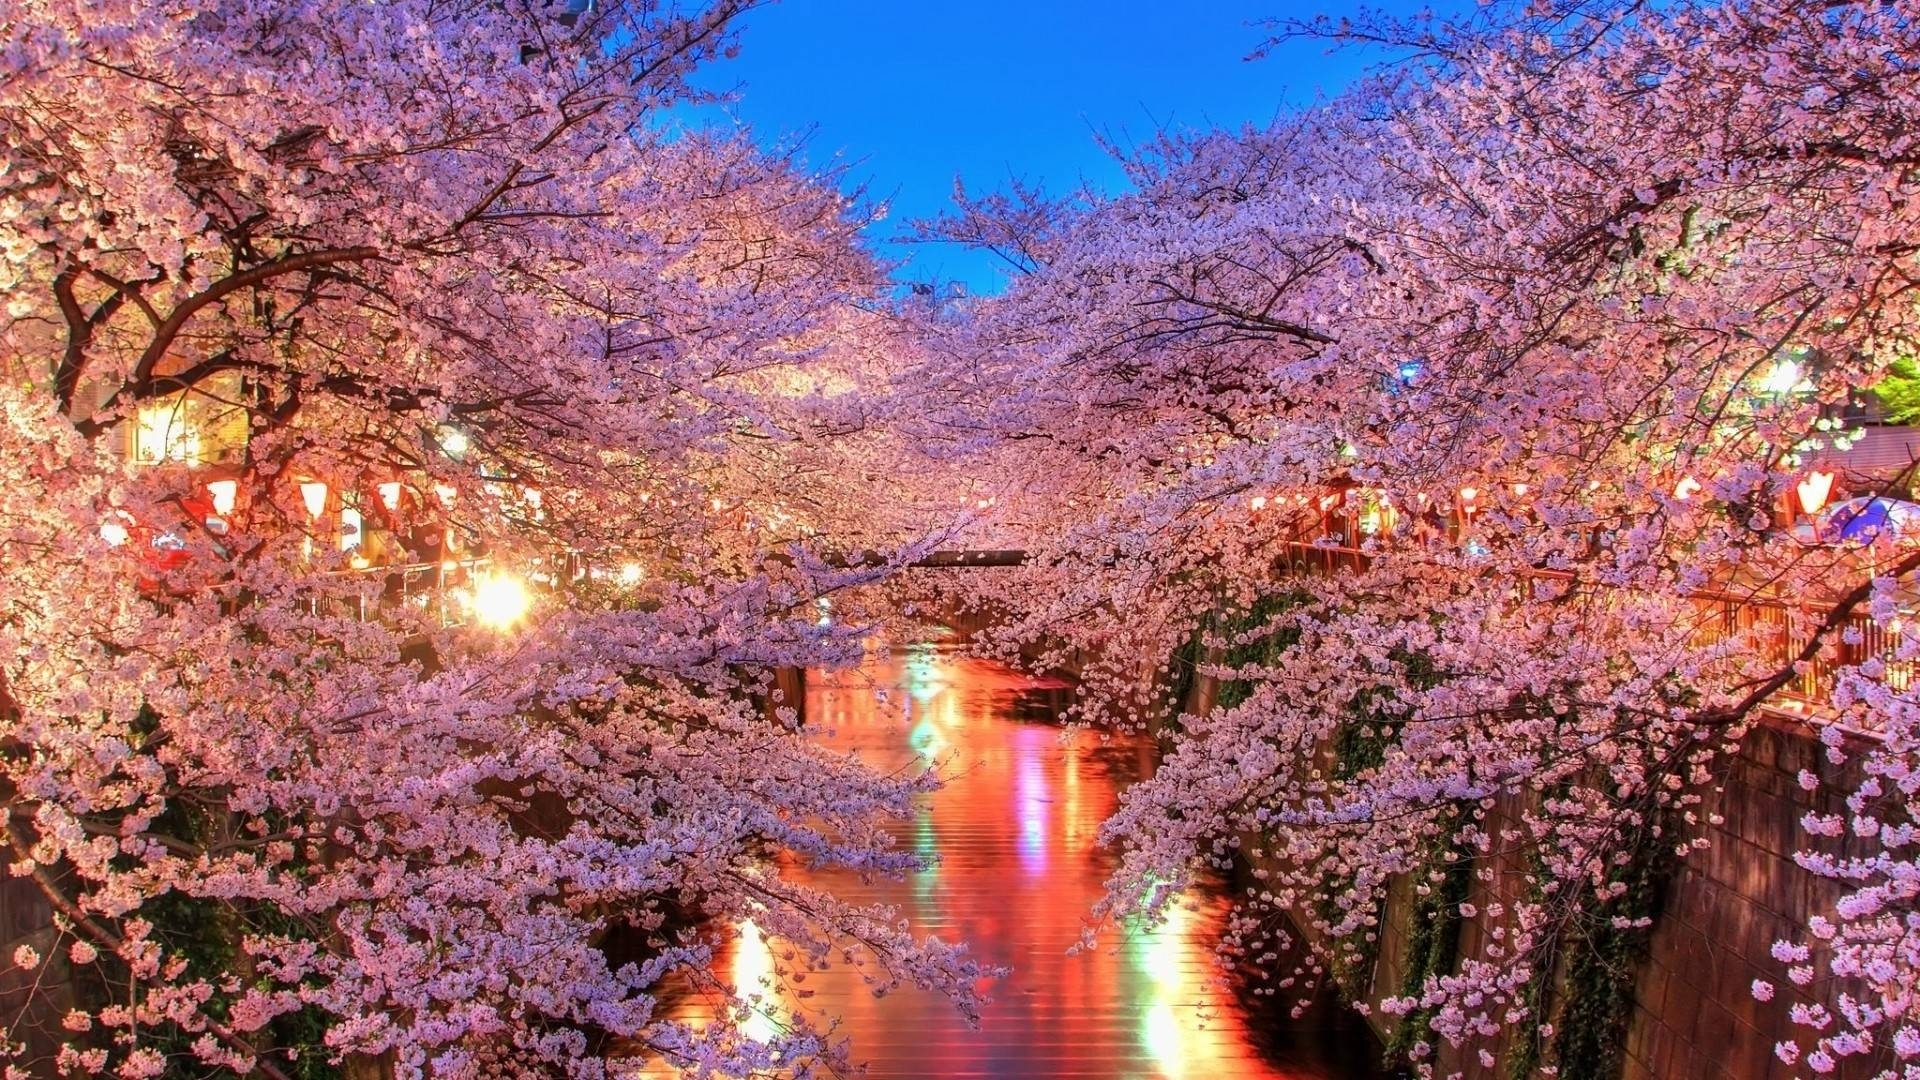 cherry blossom desktop wallpapers - wallpaper cave